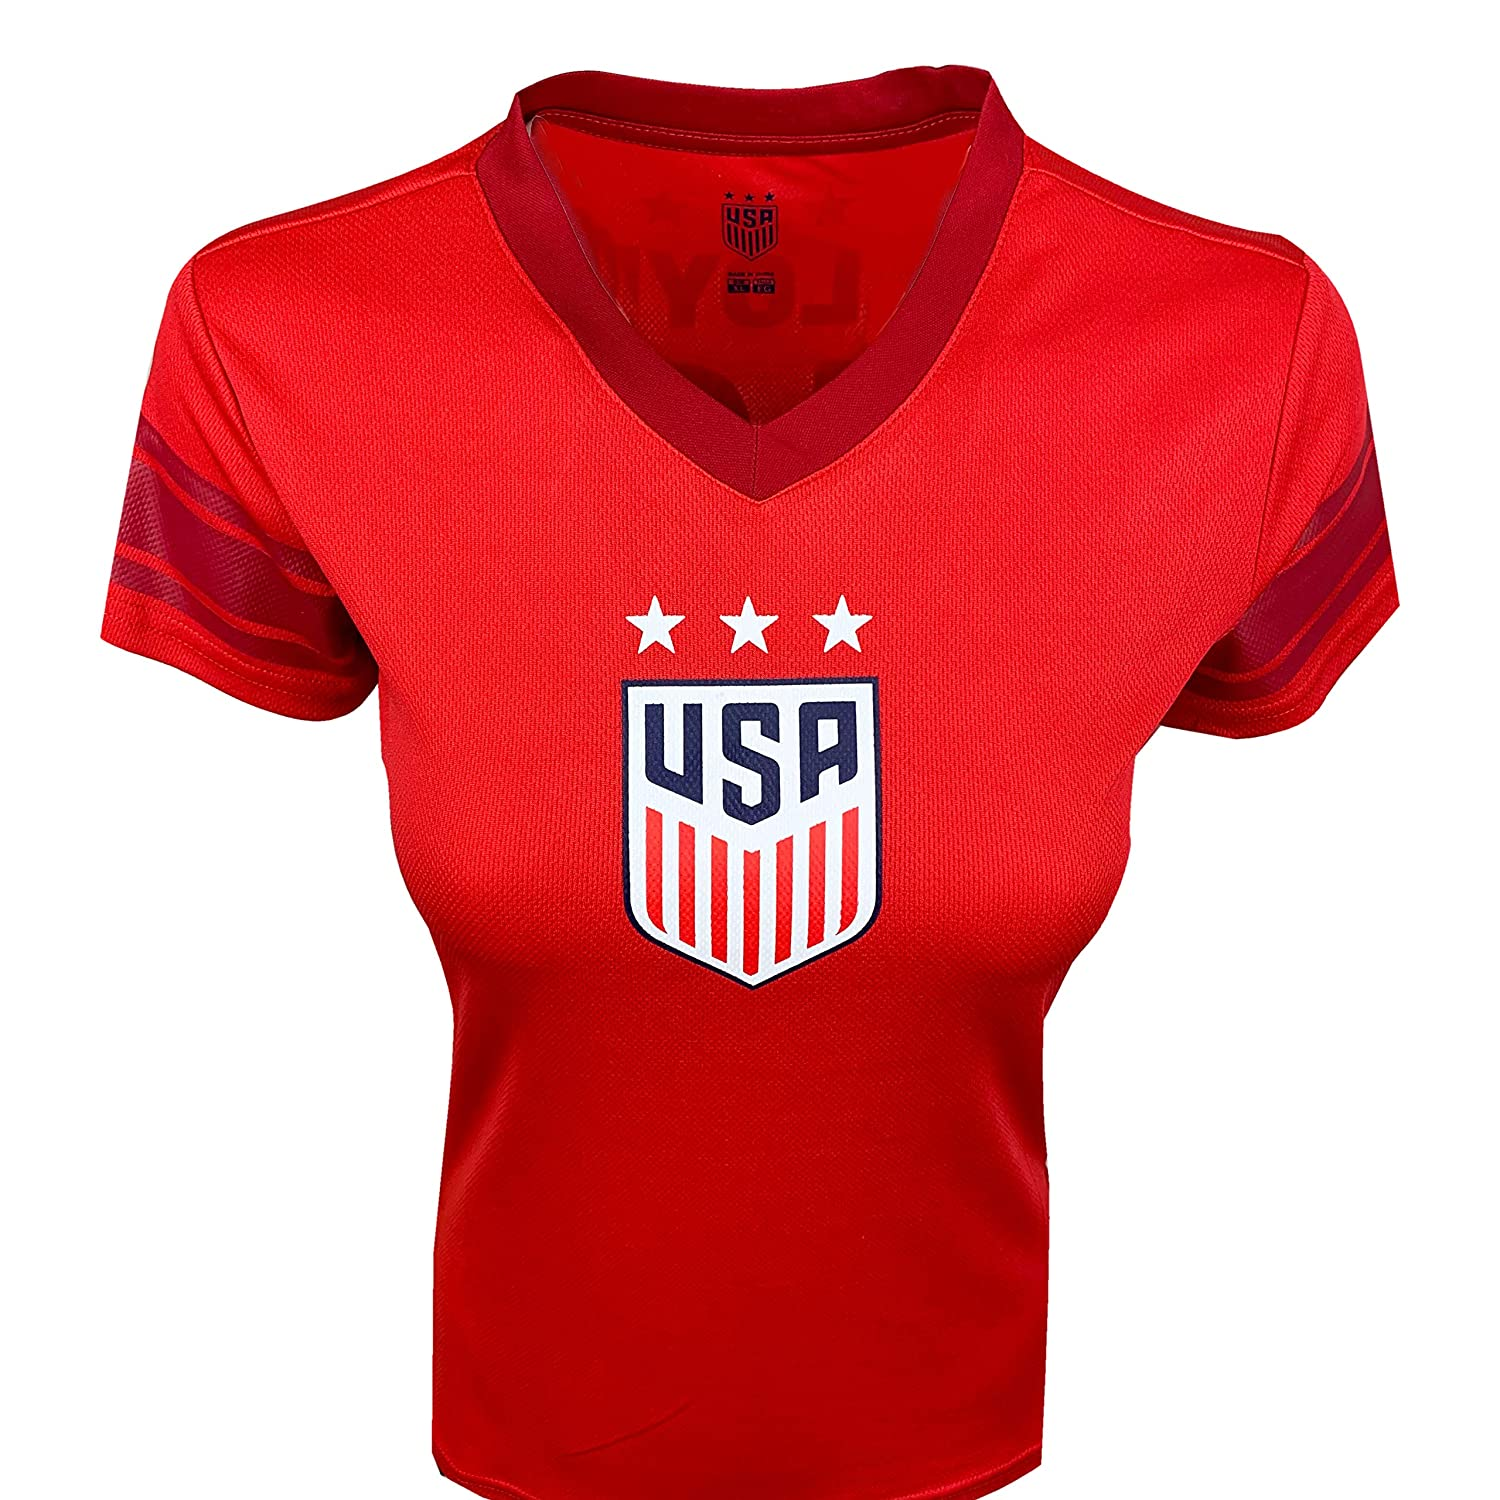 USA Carli Lloyd Red Jersey for Women and Girls Official US Lloyd Training Jersey Number 10